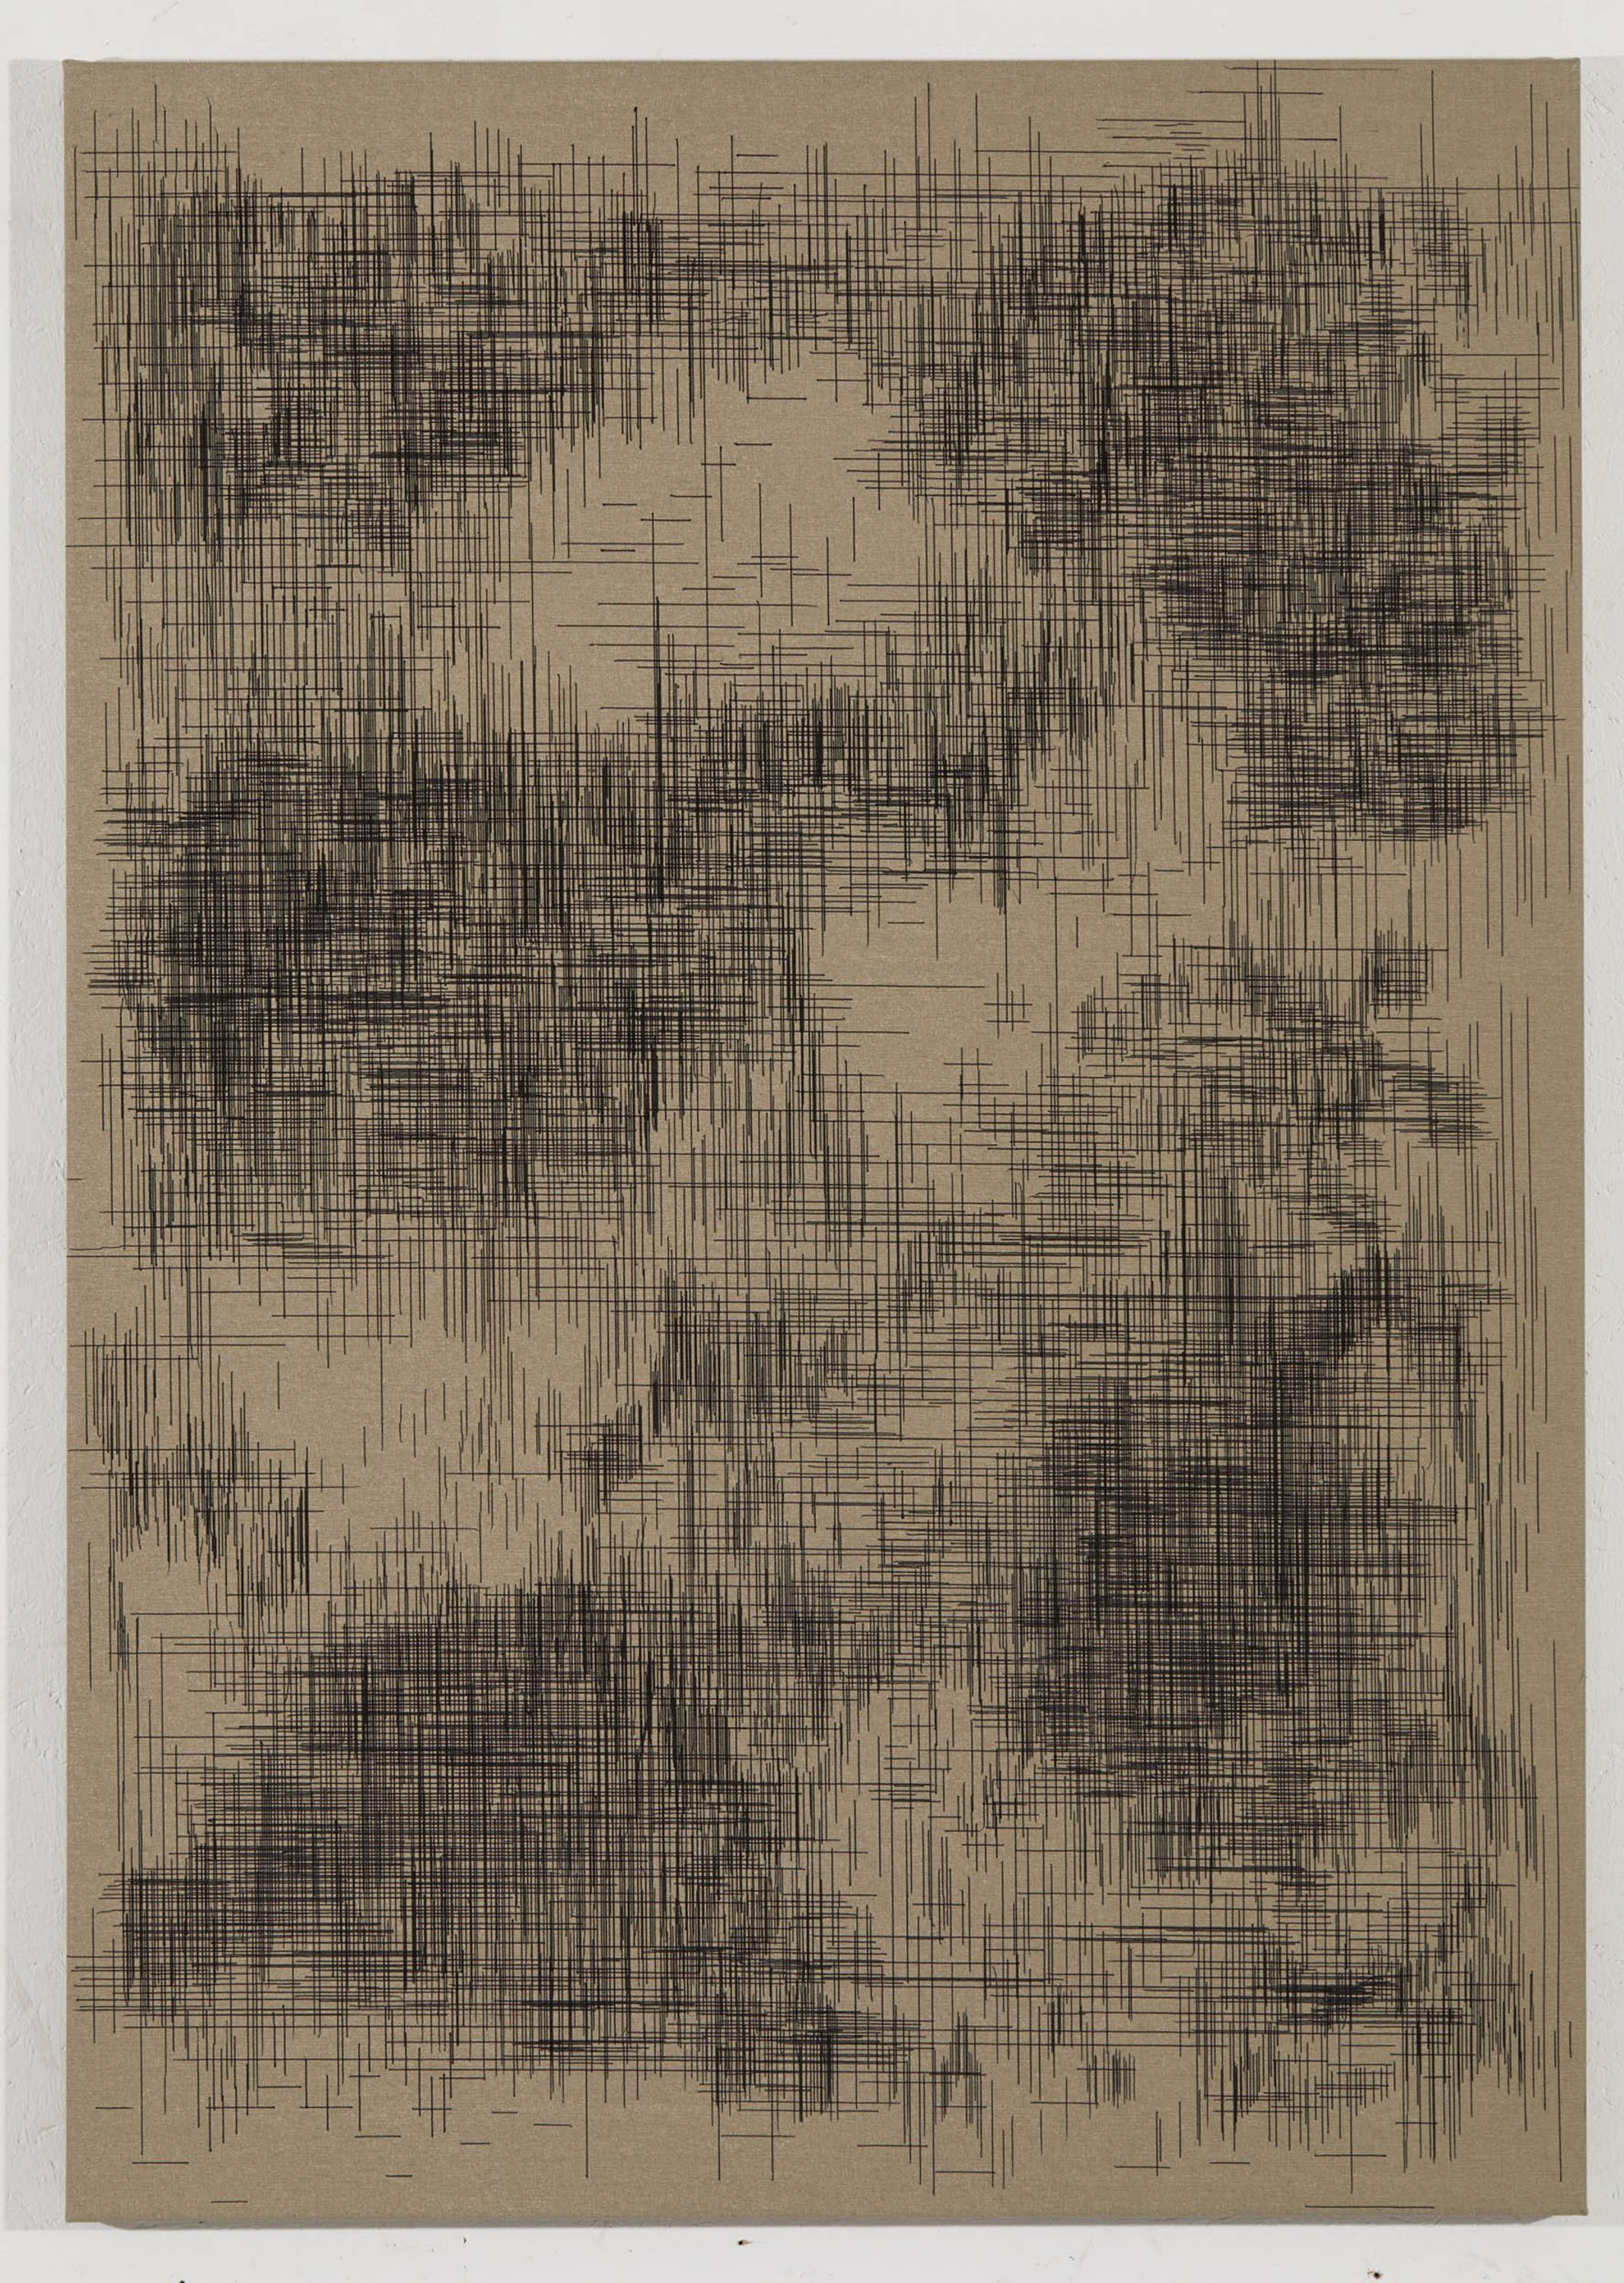 Untitled (20.10.17) by Joan Saló, Taubert Contemporary